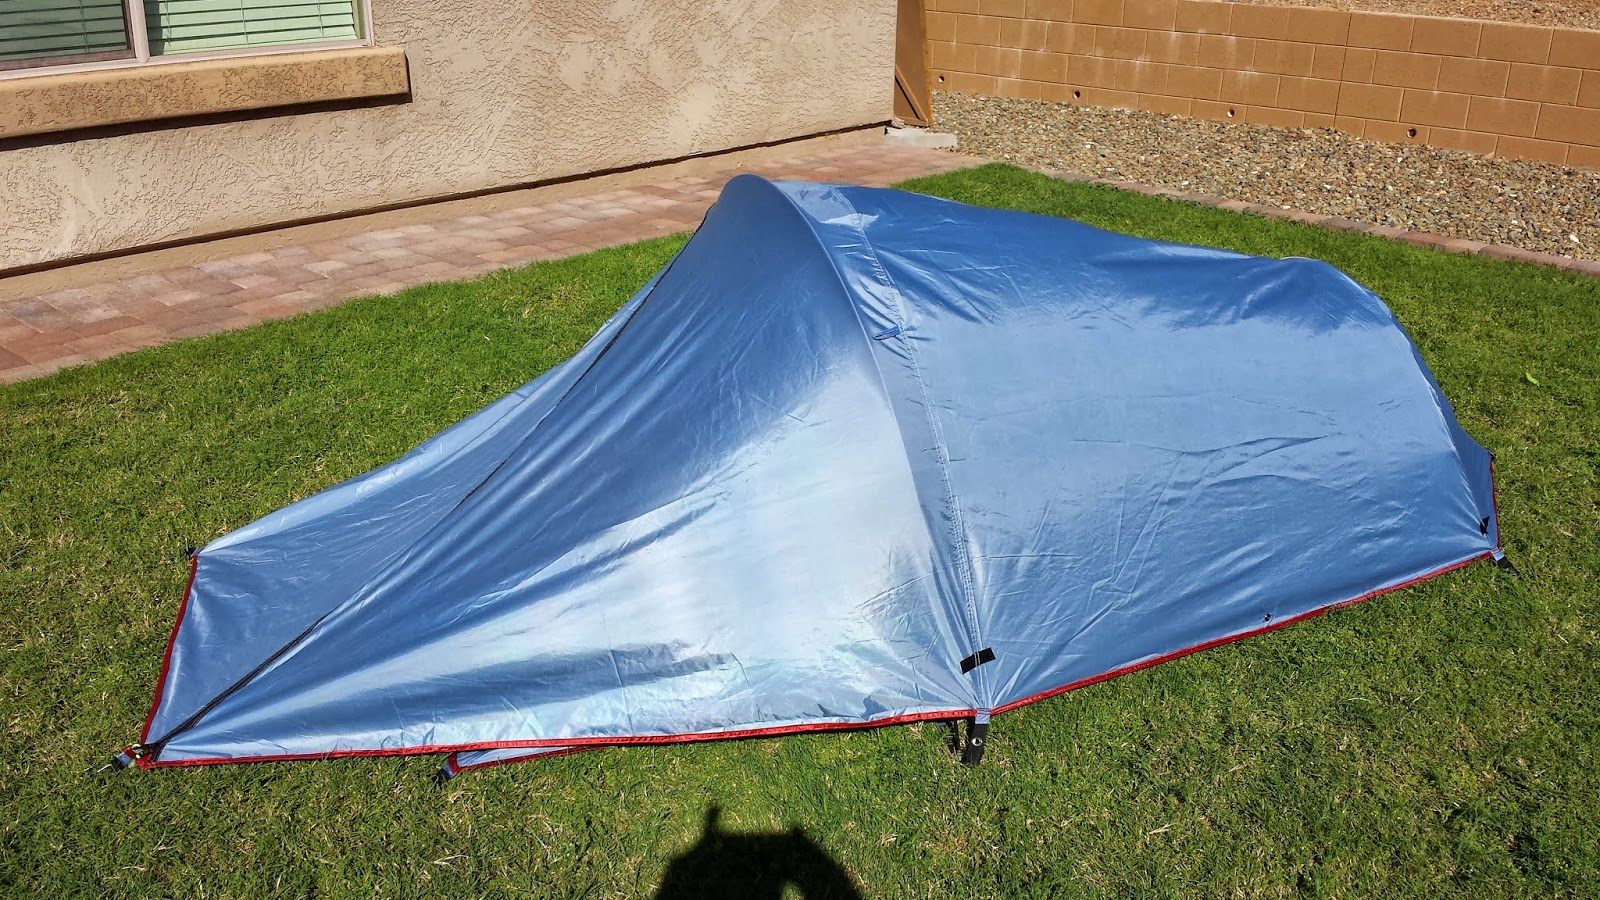 Texsport Saguaro Bivy Shelter Tent has a add-on vestibule? that extends storage & Texsport Saguaro Bivy Shelter Tent